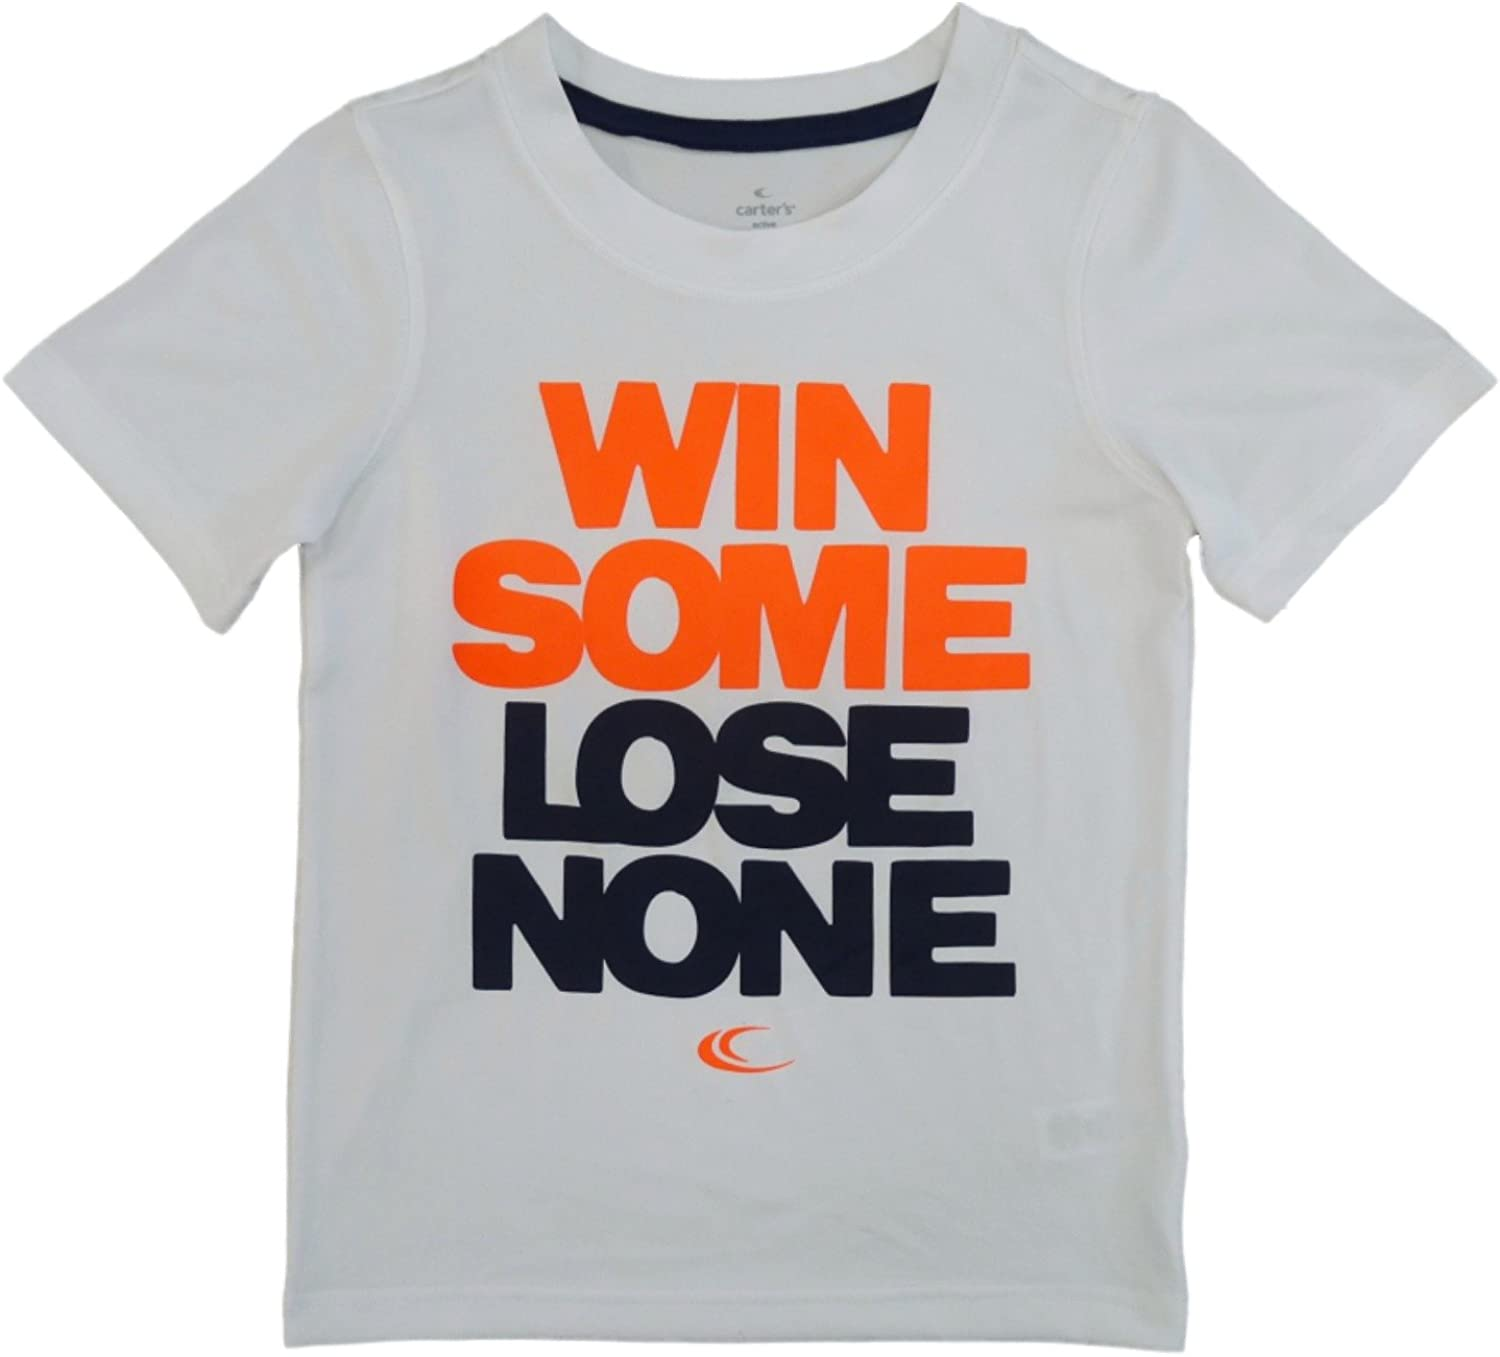 Carter's Boys White T-Shirt Win Some Lose None Athletic Shirt 5